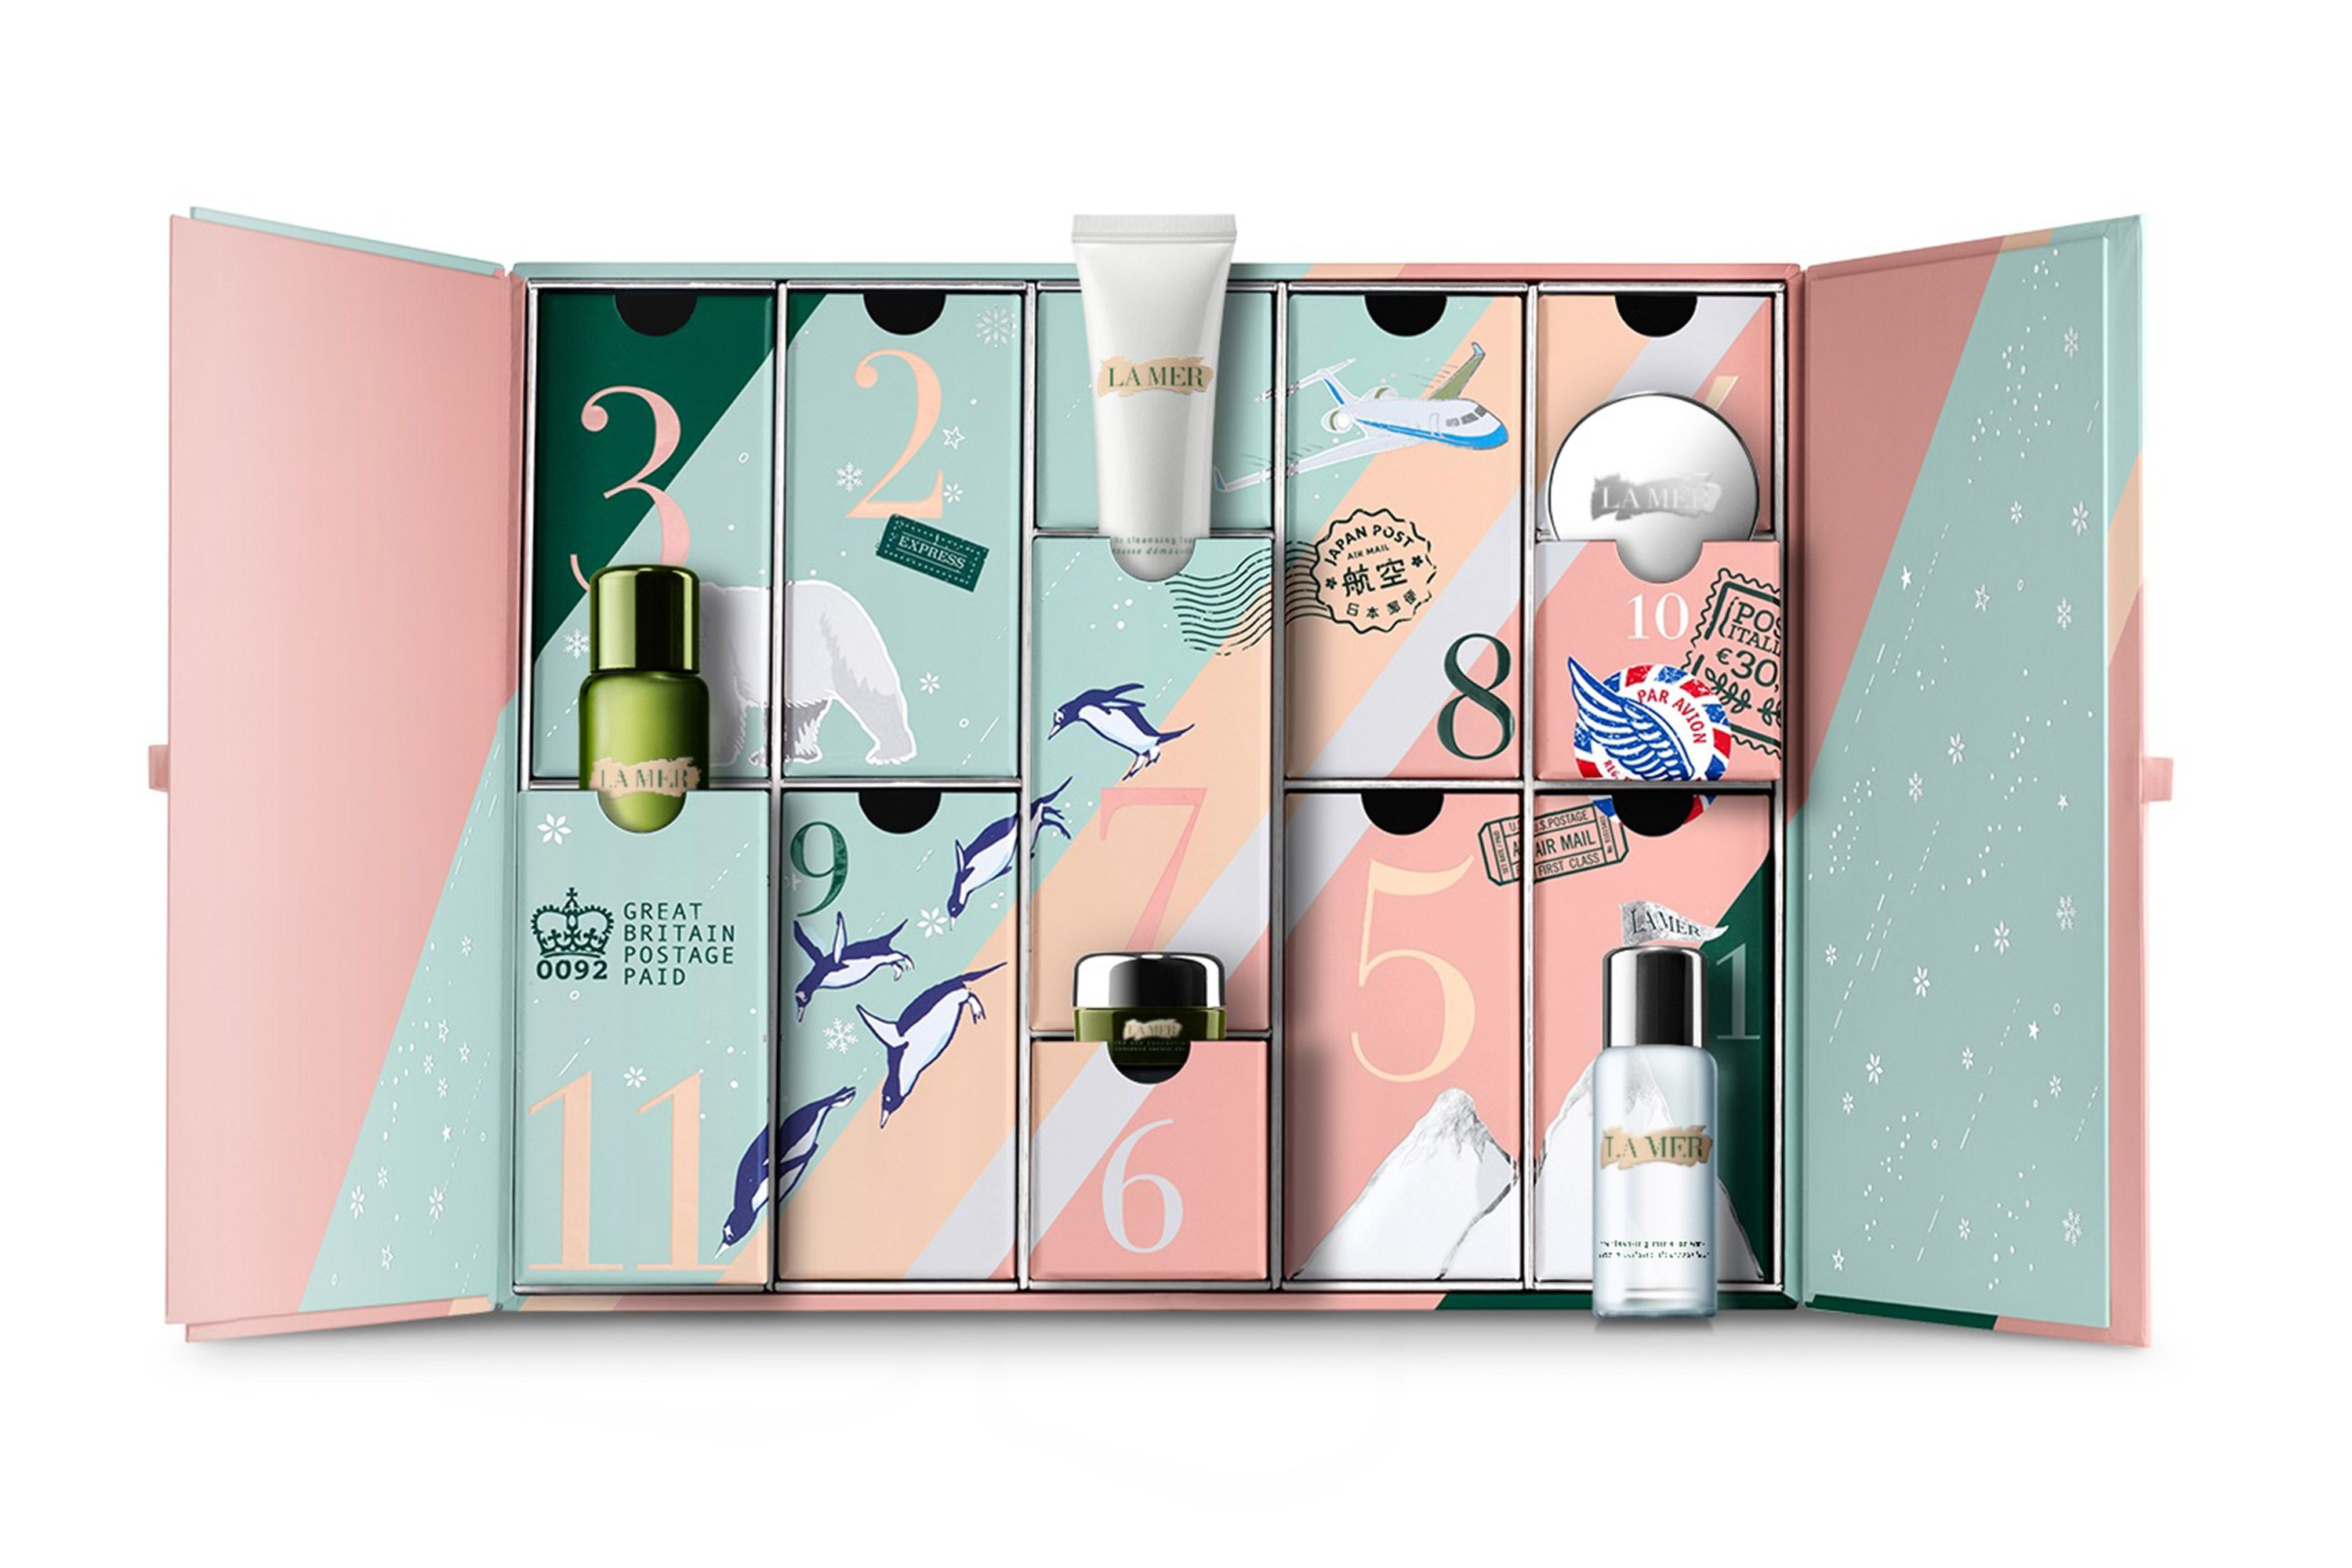 The Best Luxury Advent Calendars 2018 Beauty From 3d Home Design Deluxe 11 Free Download Trend And Decor La Mer To Charlotte Tilbury